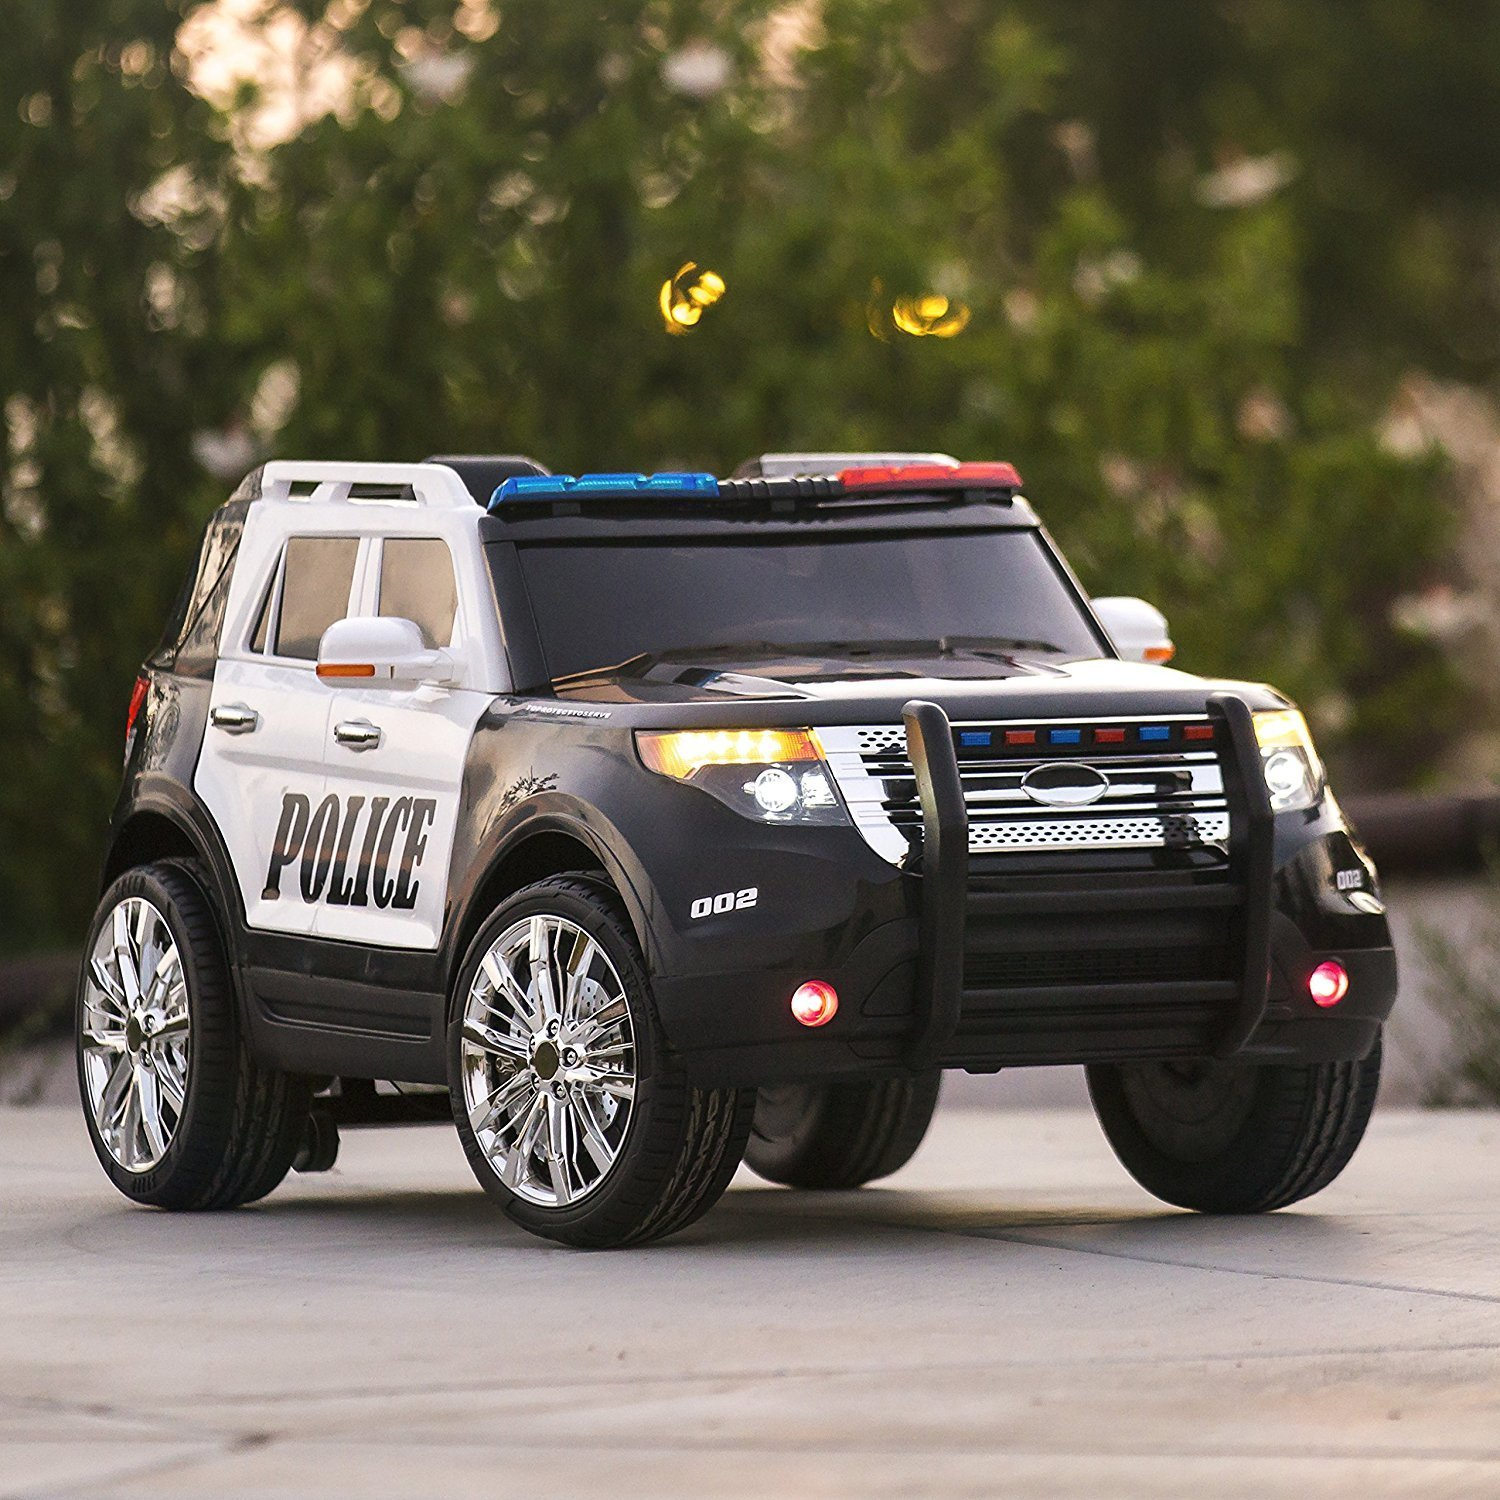 Cop car toy,Products Ford Style 12V Ride On Car Police